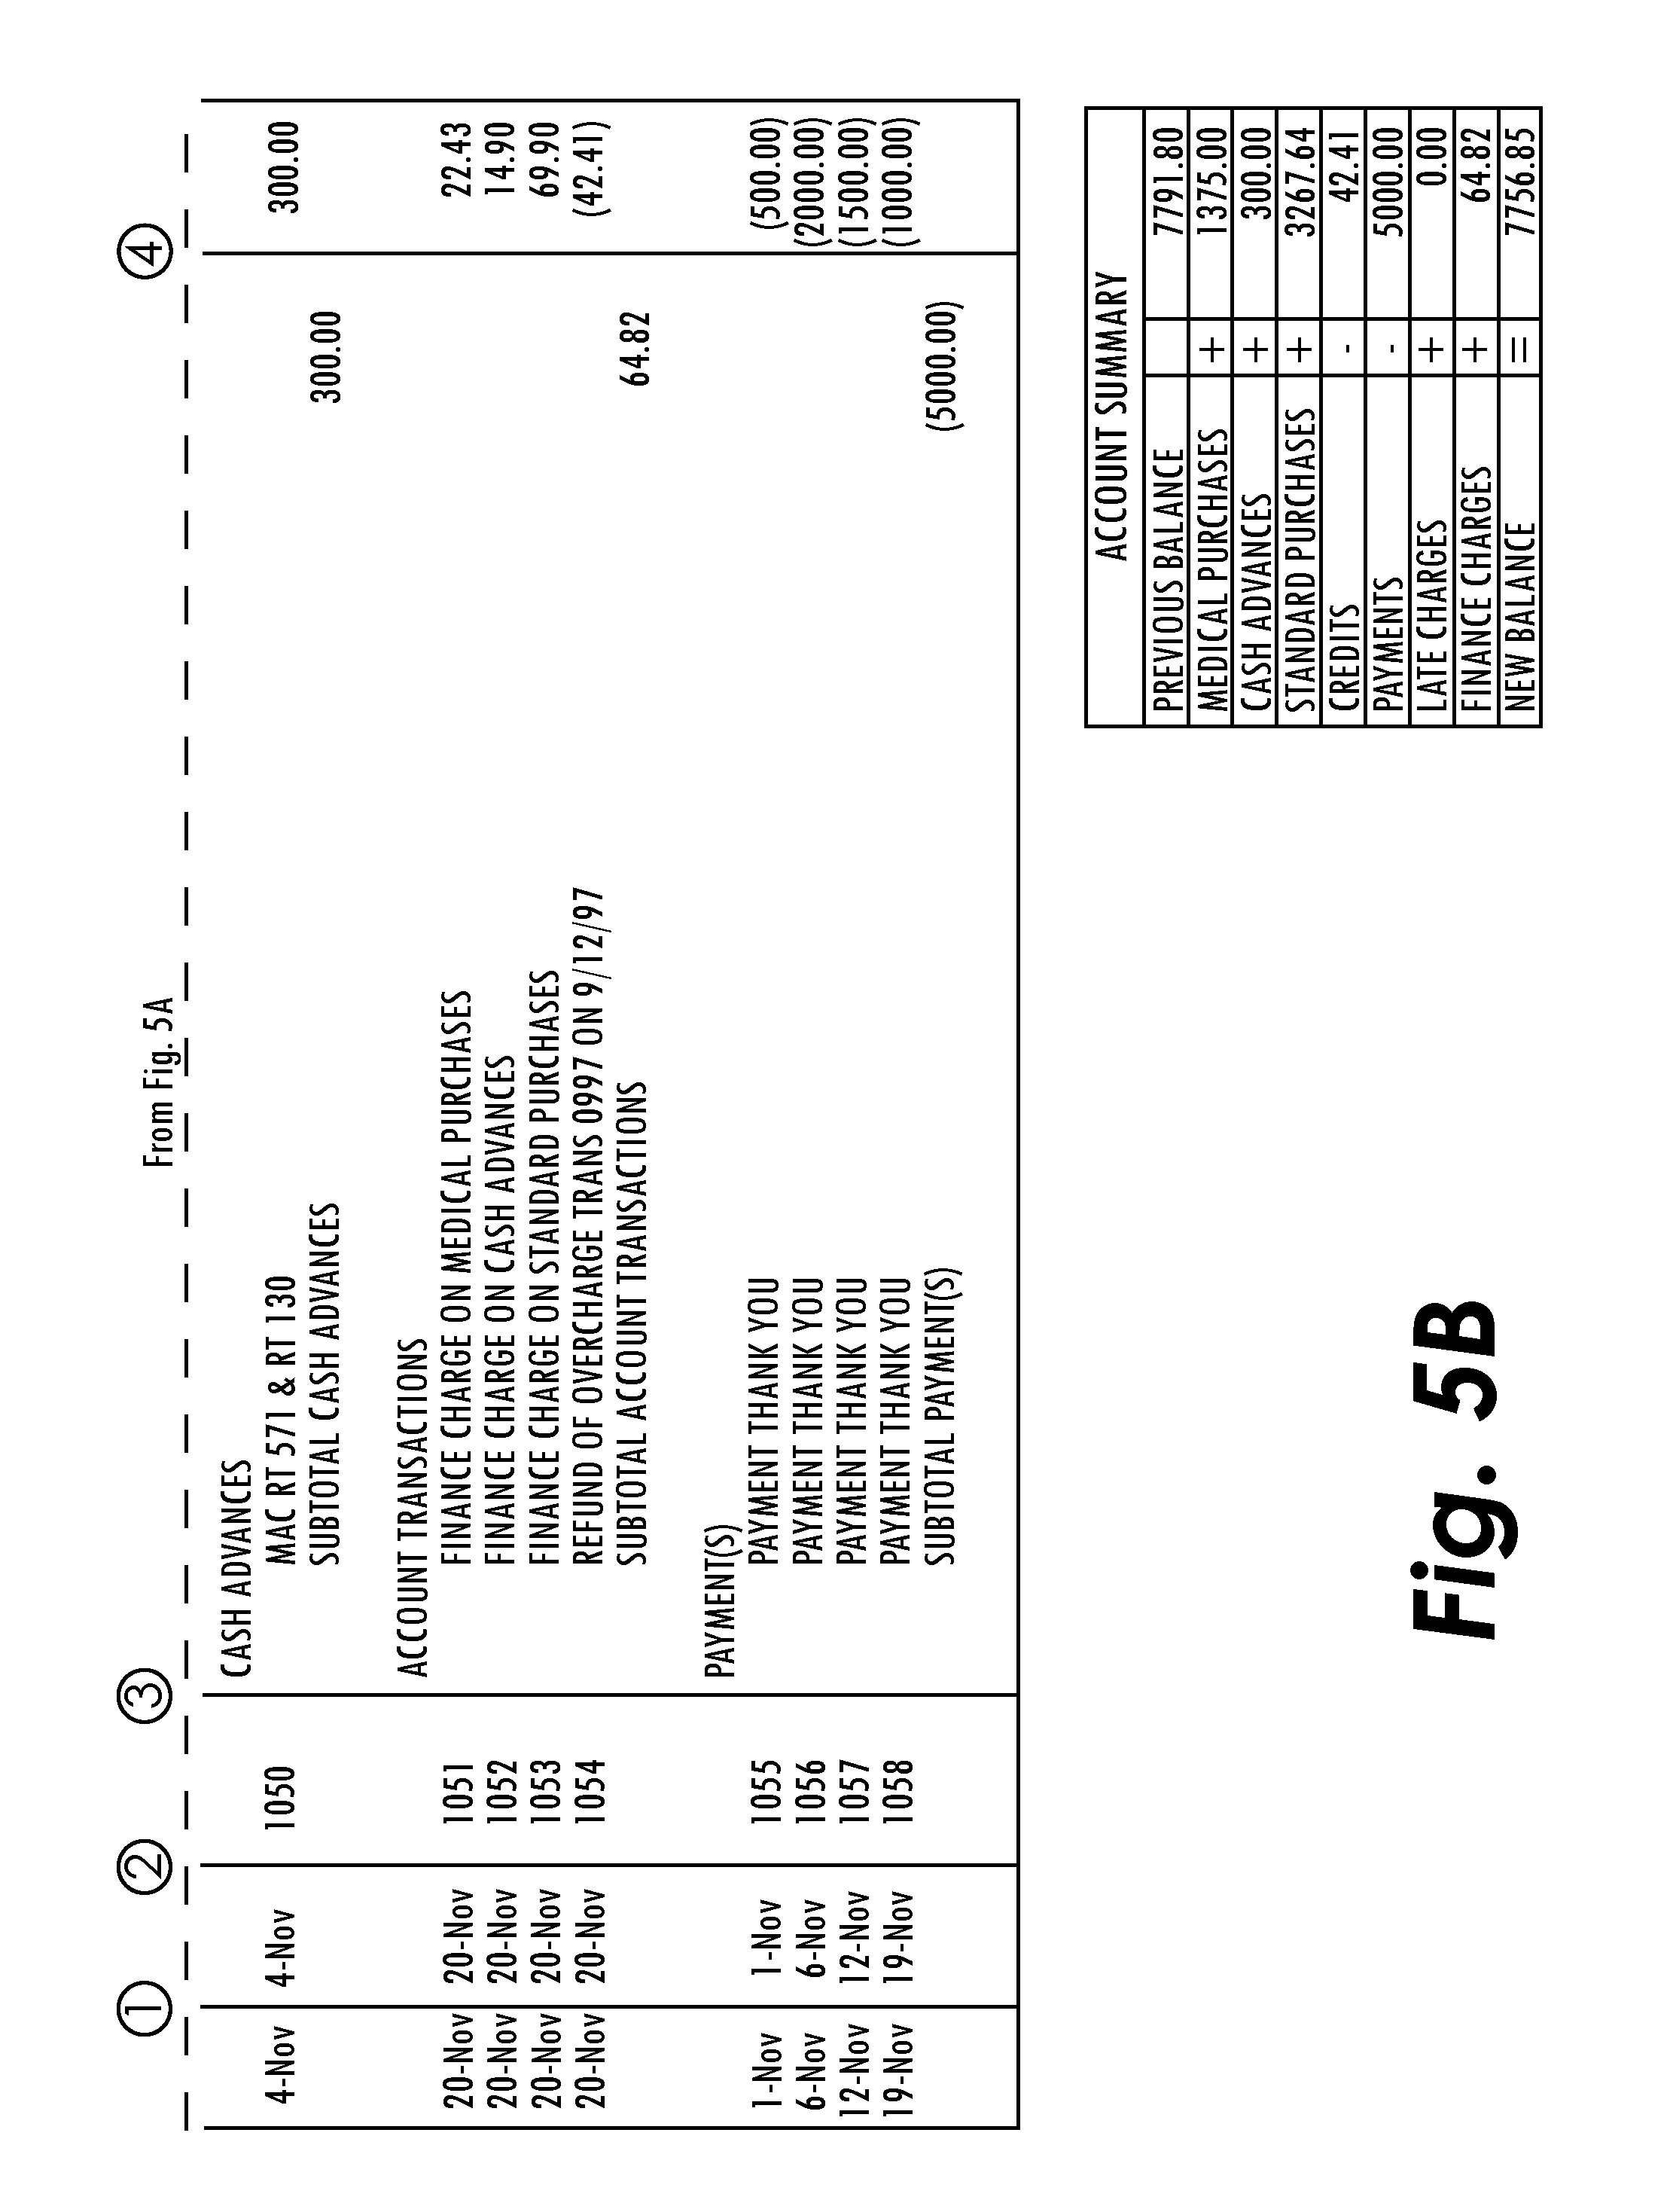 Shipping Invoice Template Patent Us  Point Of Service Third Party Financial  How To Invoice A Client with Sample Cash Receipt Form Pdf Patent Drawing Synonyms For Receipt